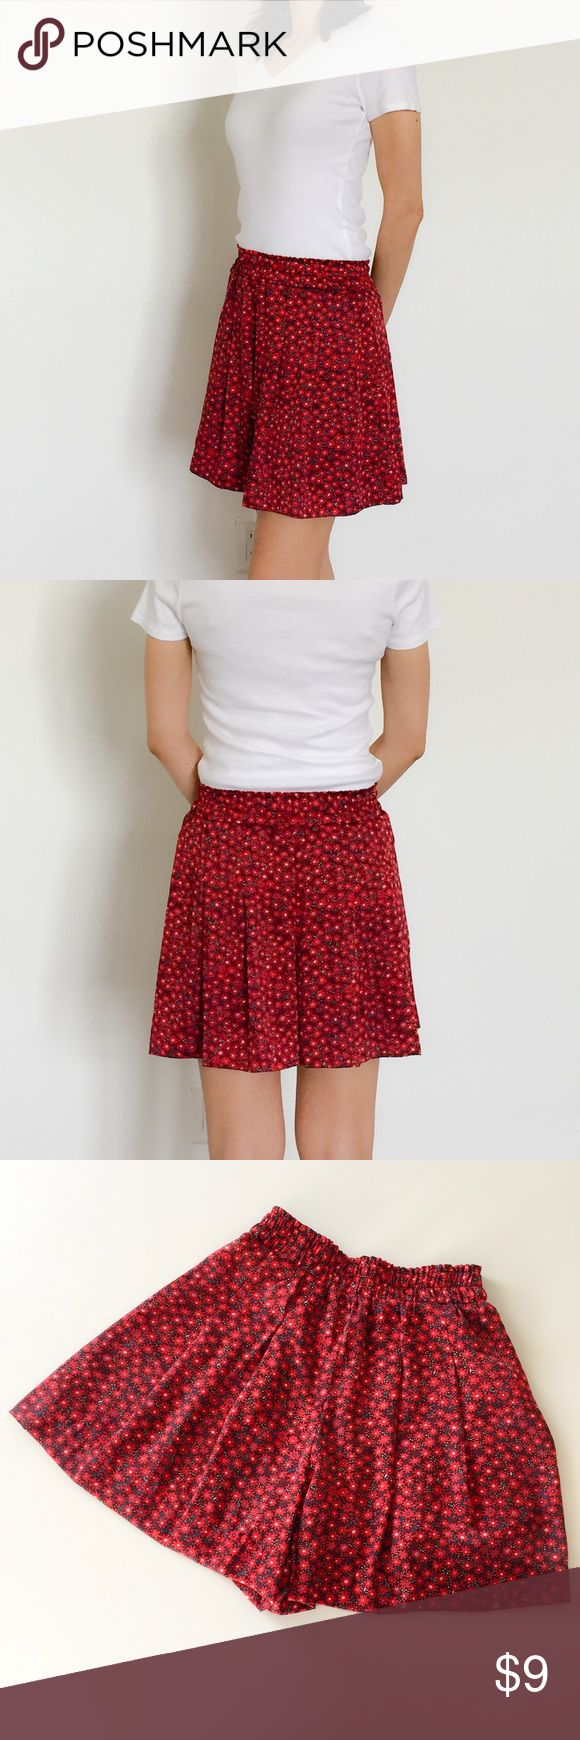 Uniqlo Shorts Flowing shorts with tiny red flower prints UNIQLO Shorts